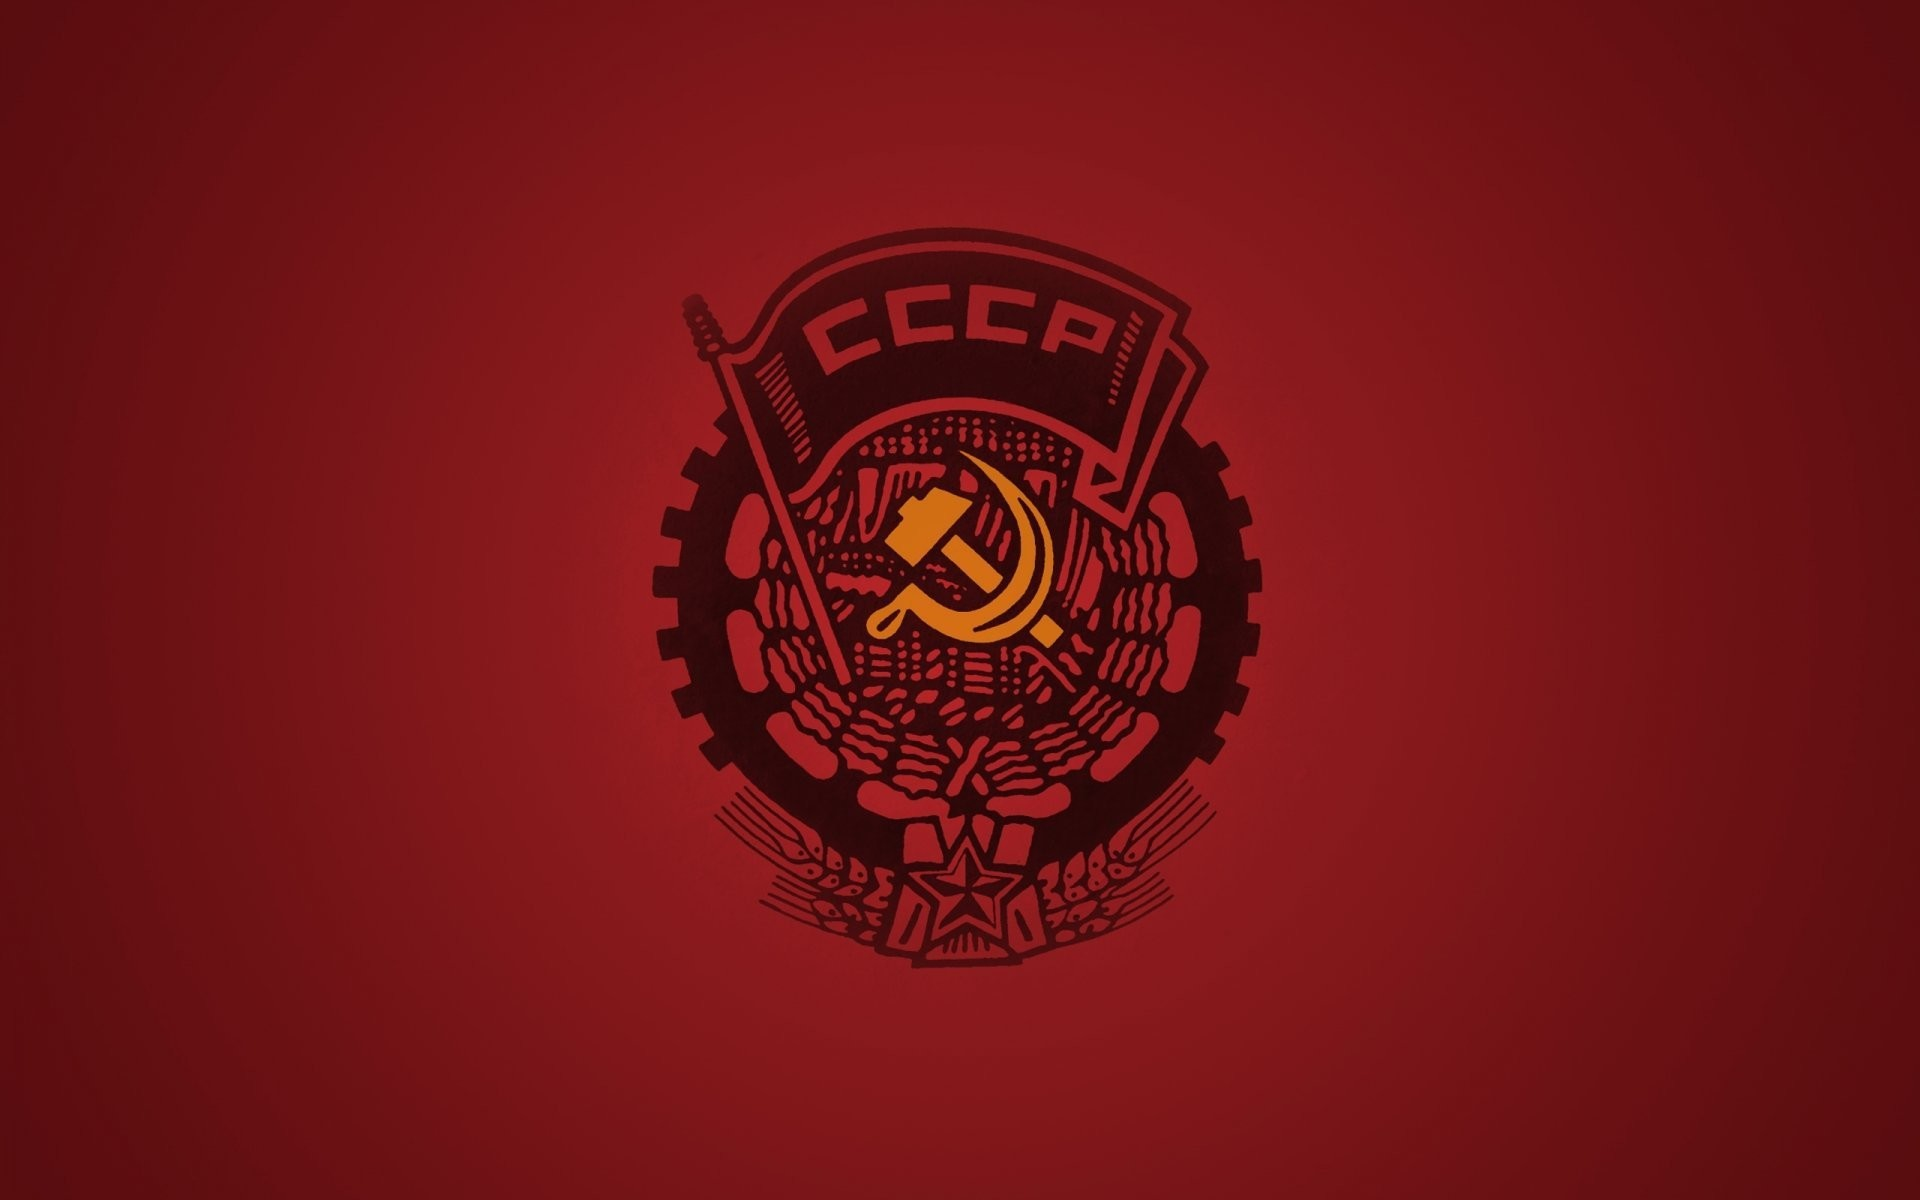 1920x1200 soviet union background red the hammer and sickle